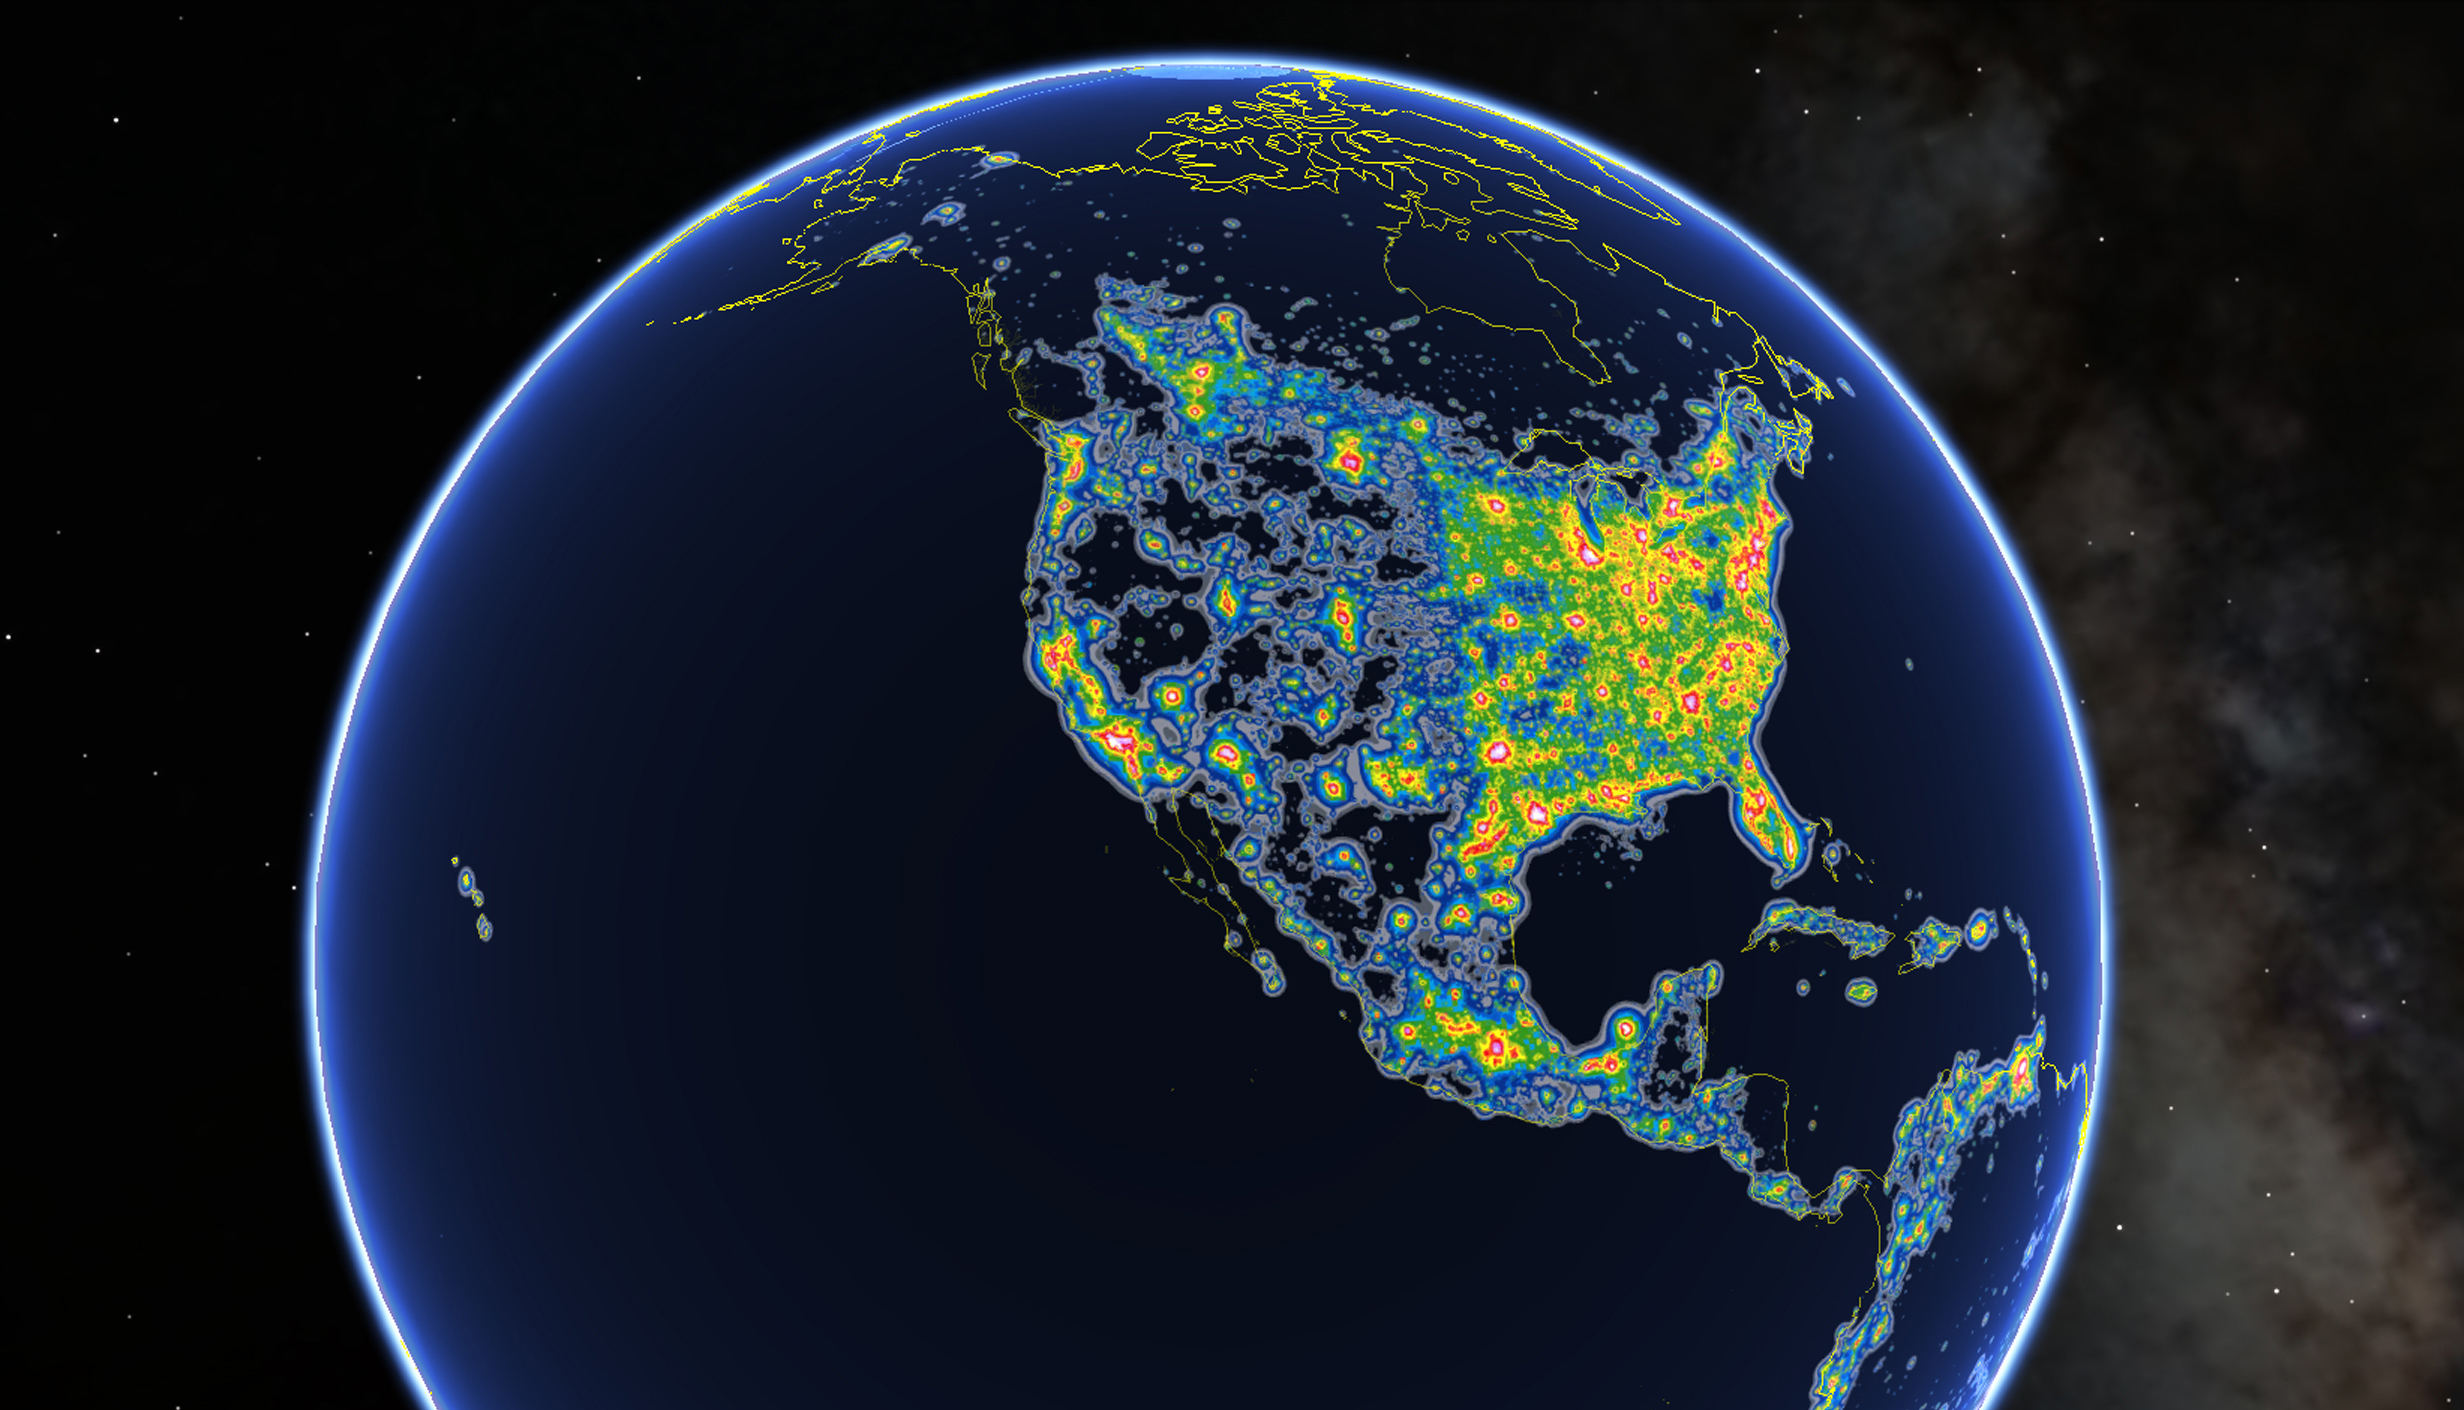 North America in New World Atlas of Artificial Sky Brightness, as seen in Google Earth.